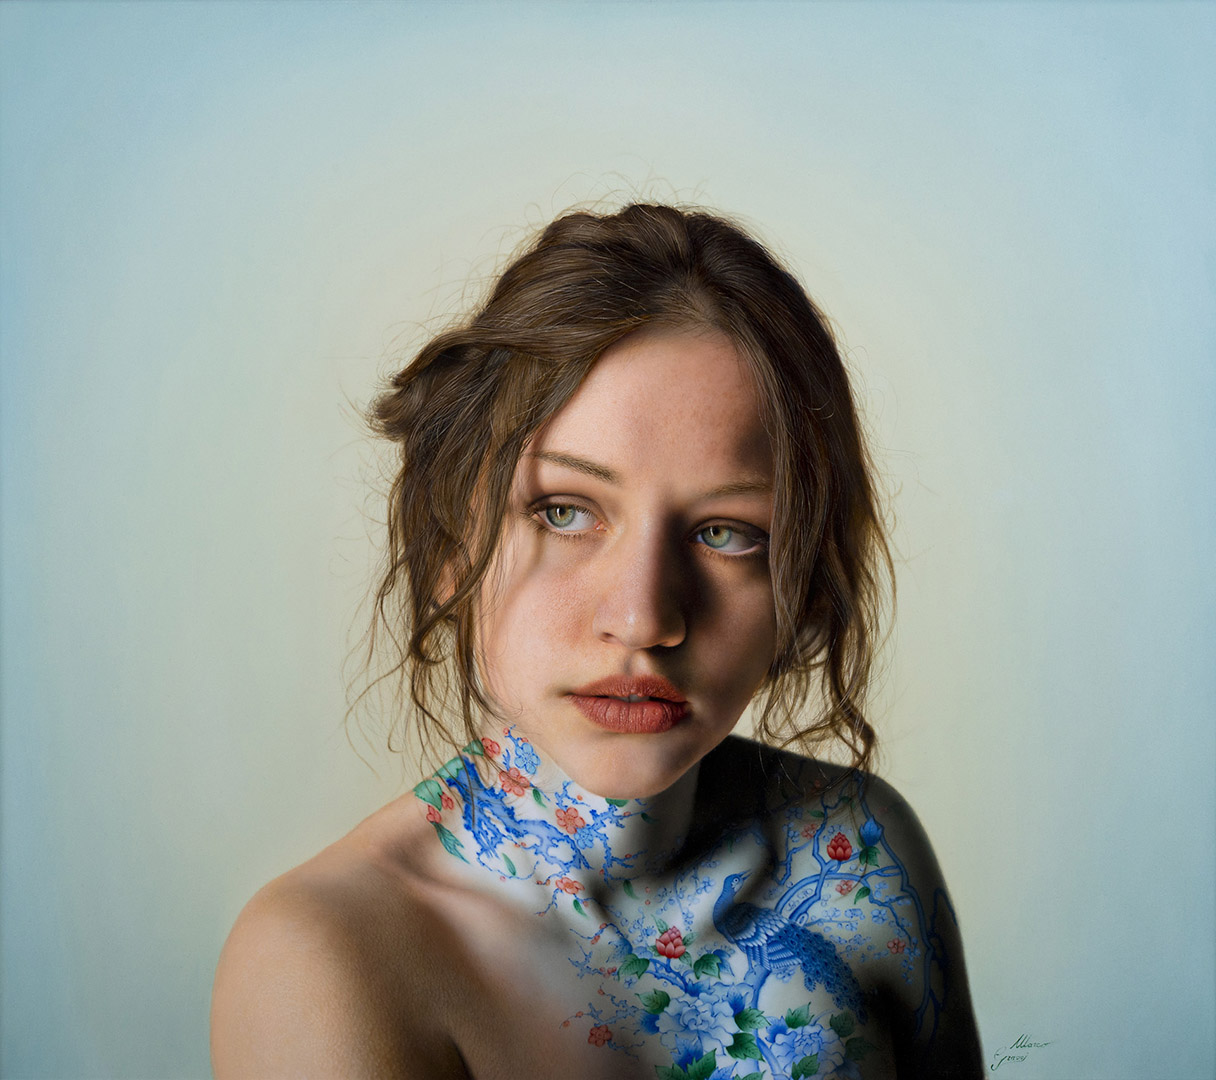 Marco Grassi, Italy 'The Garden' 28 X 31in/70X80cm Acrylic, alkyd and oil on canvas. 2014